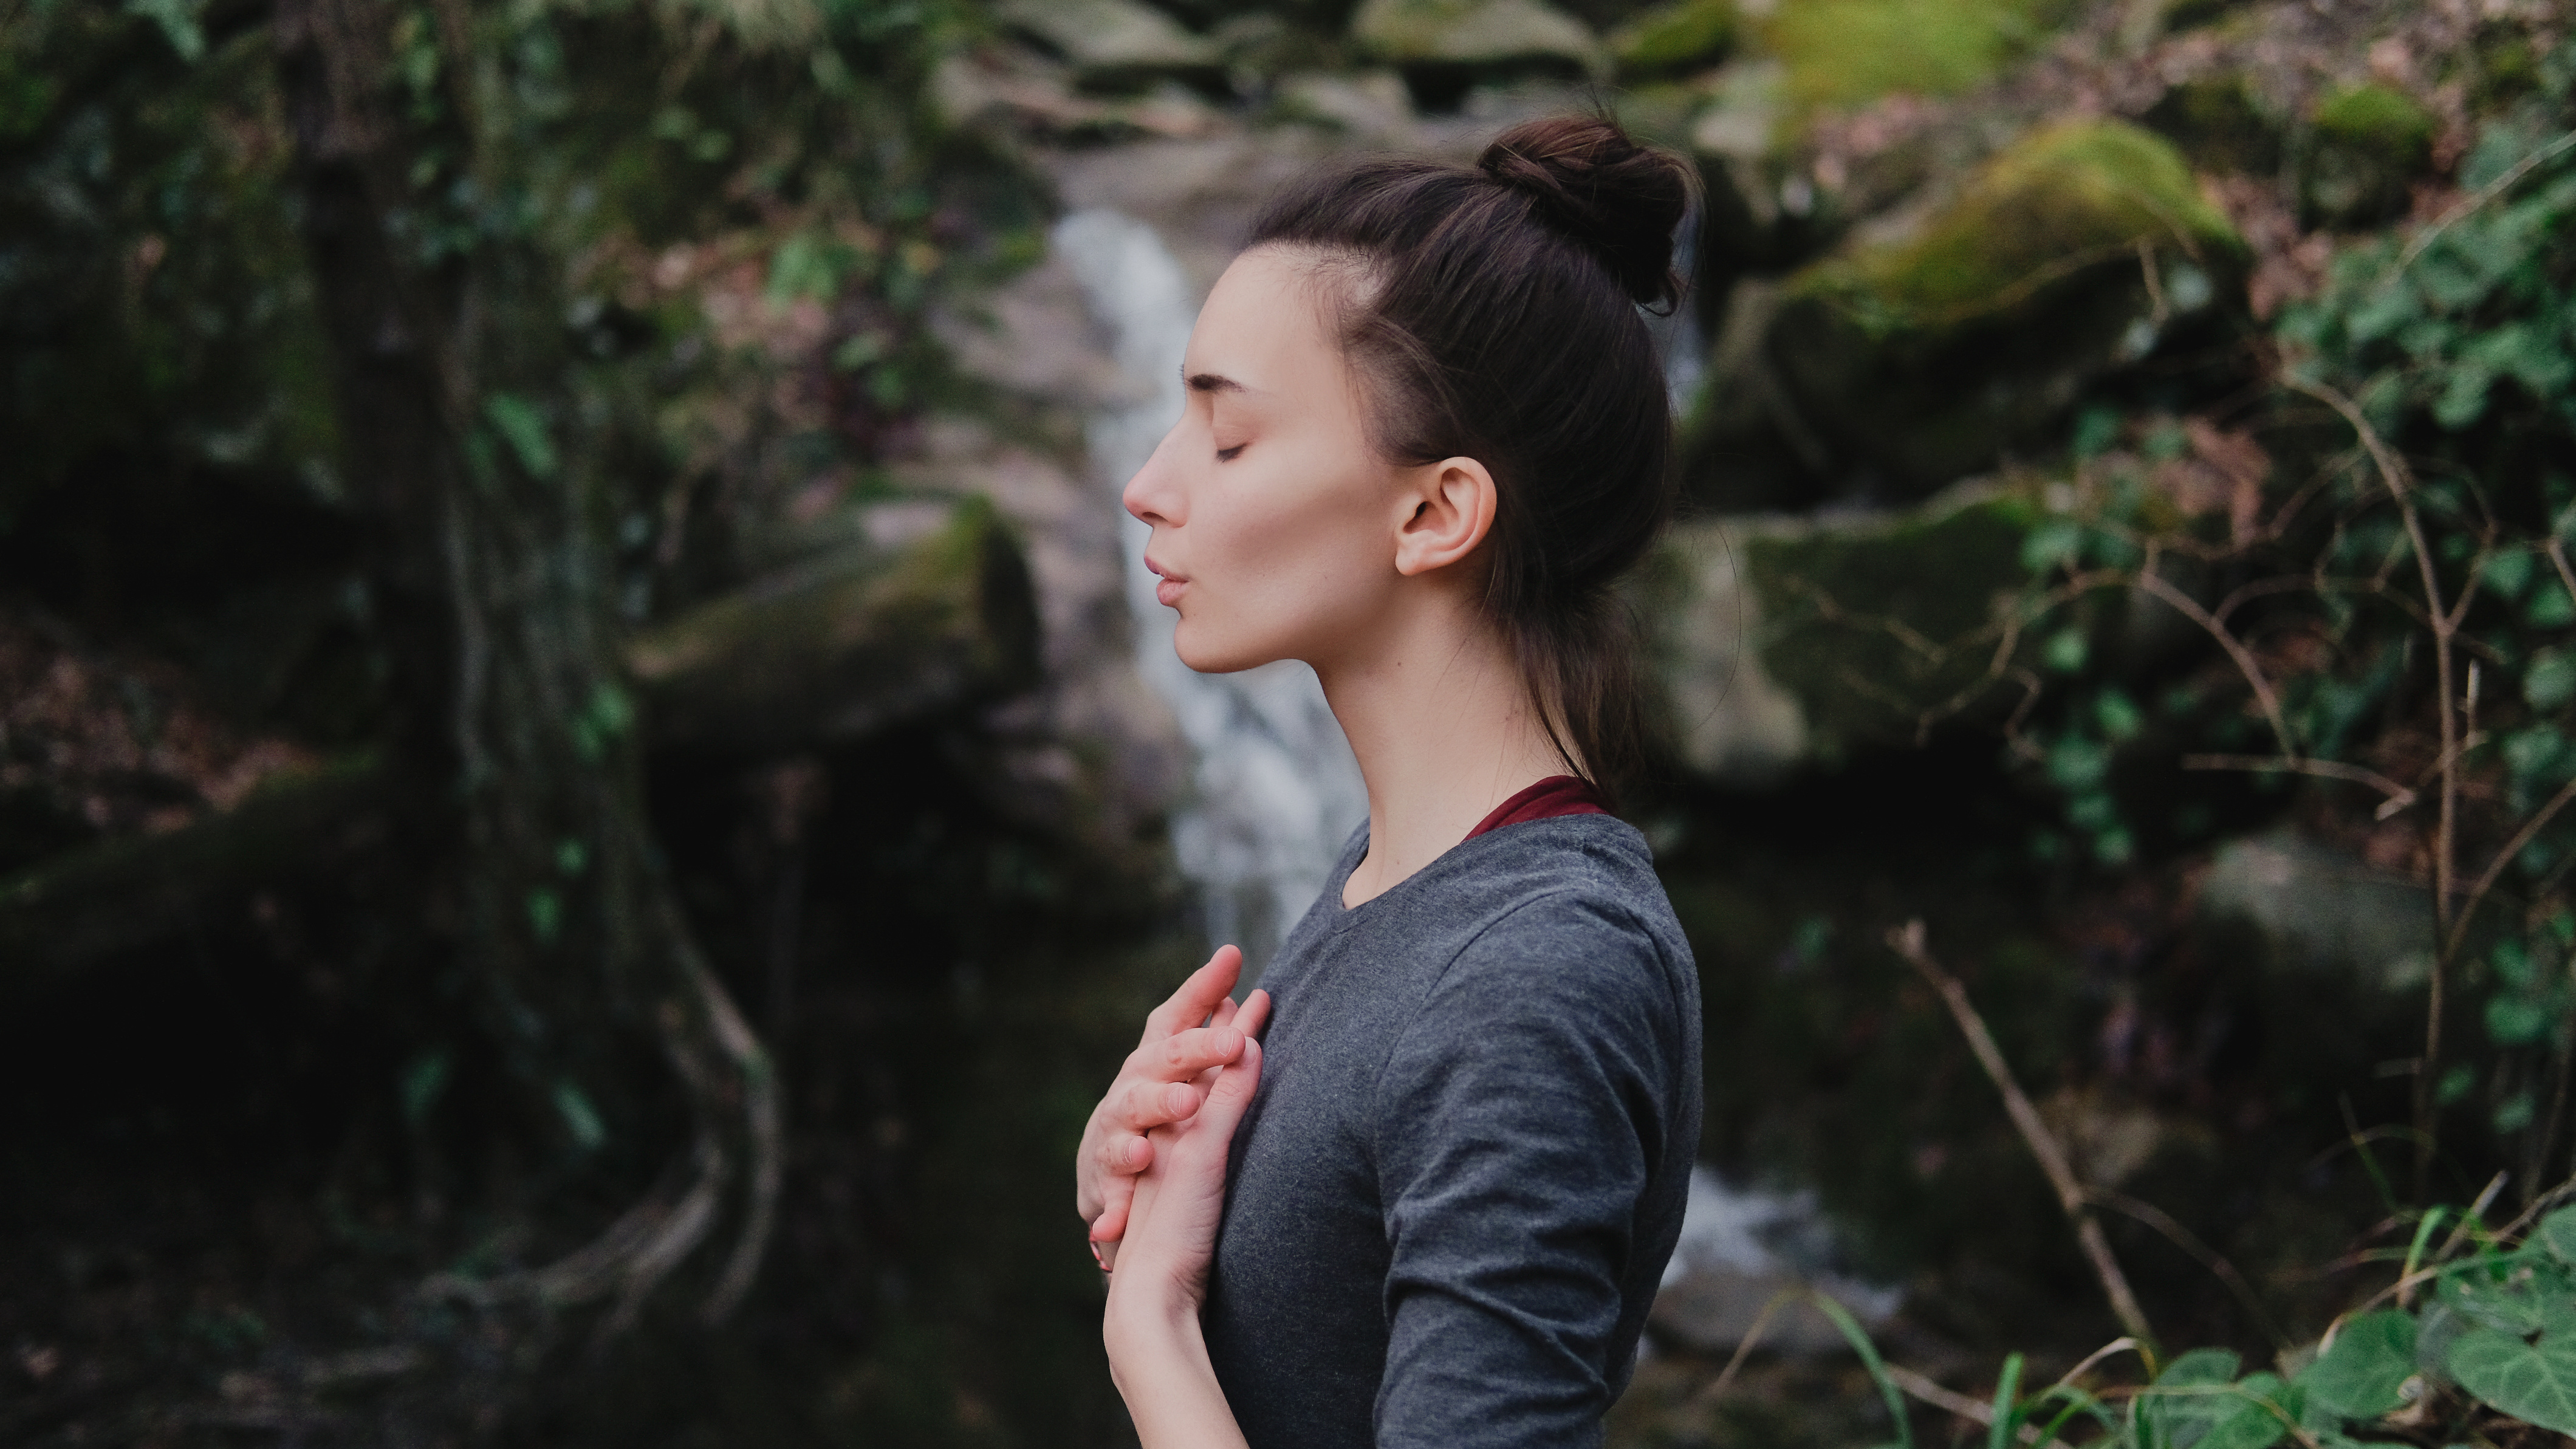 Is Breathing Connected to Free Will? - Woman breathing with eyes closed and hands on heart